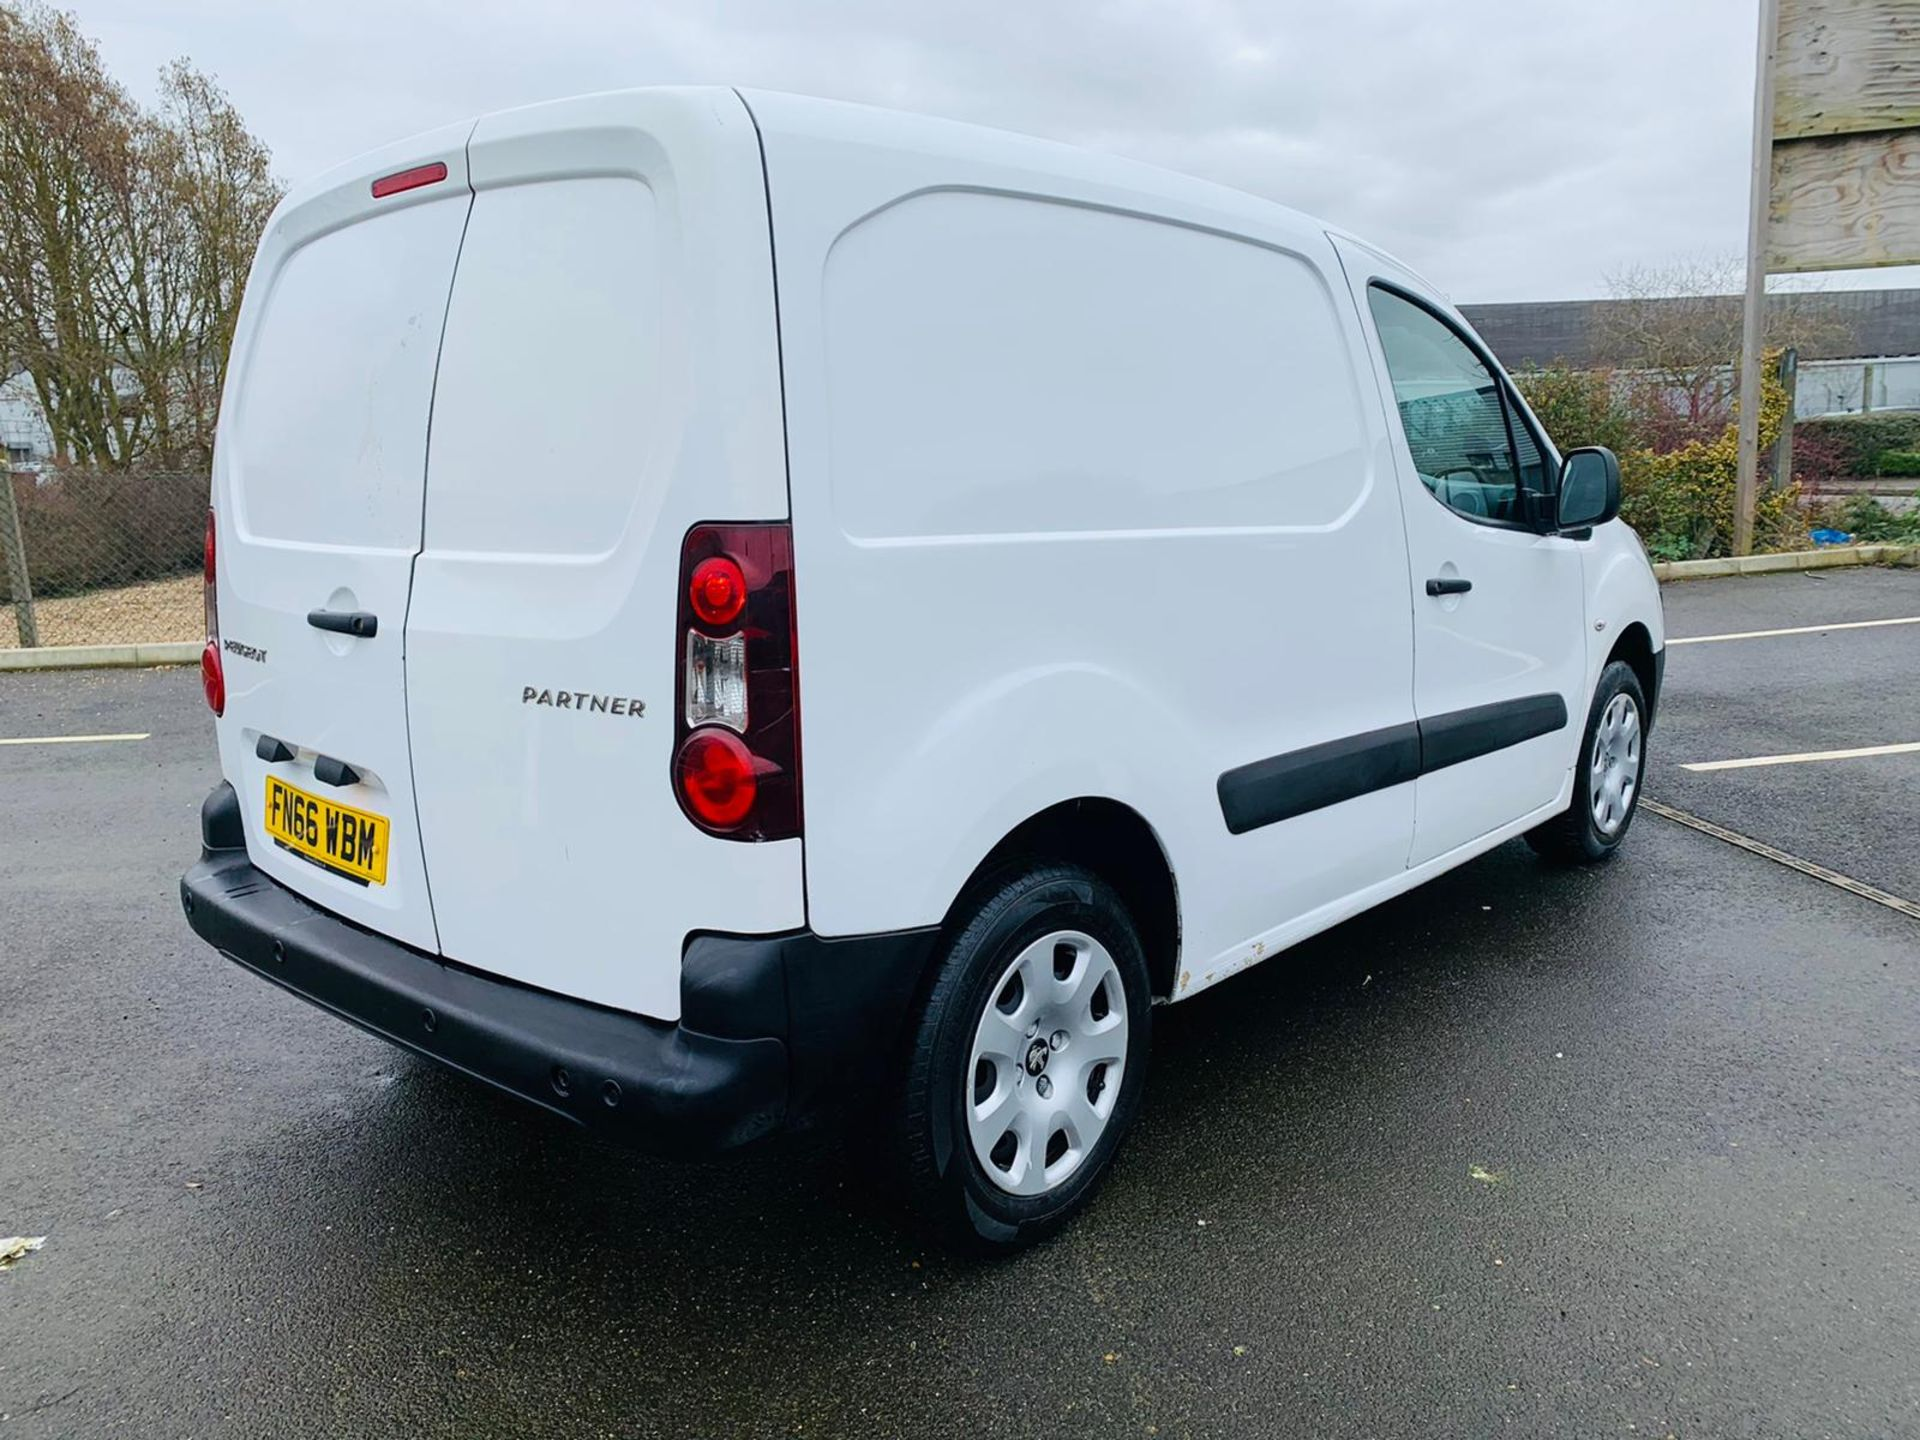 (RESERVE MET) Peugeot Partner 1.6 HDI Professional - 2017 Model - Air Con - Service History - Image 7 of 22